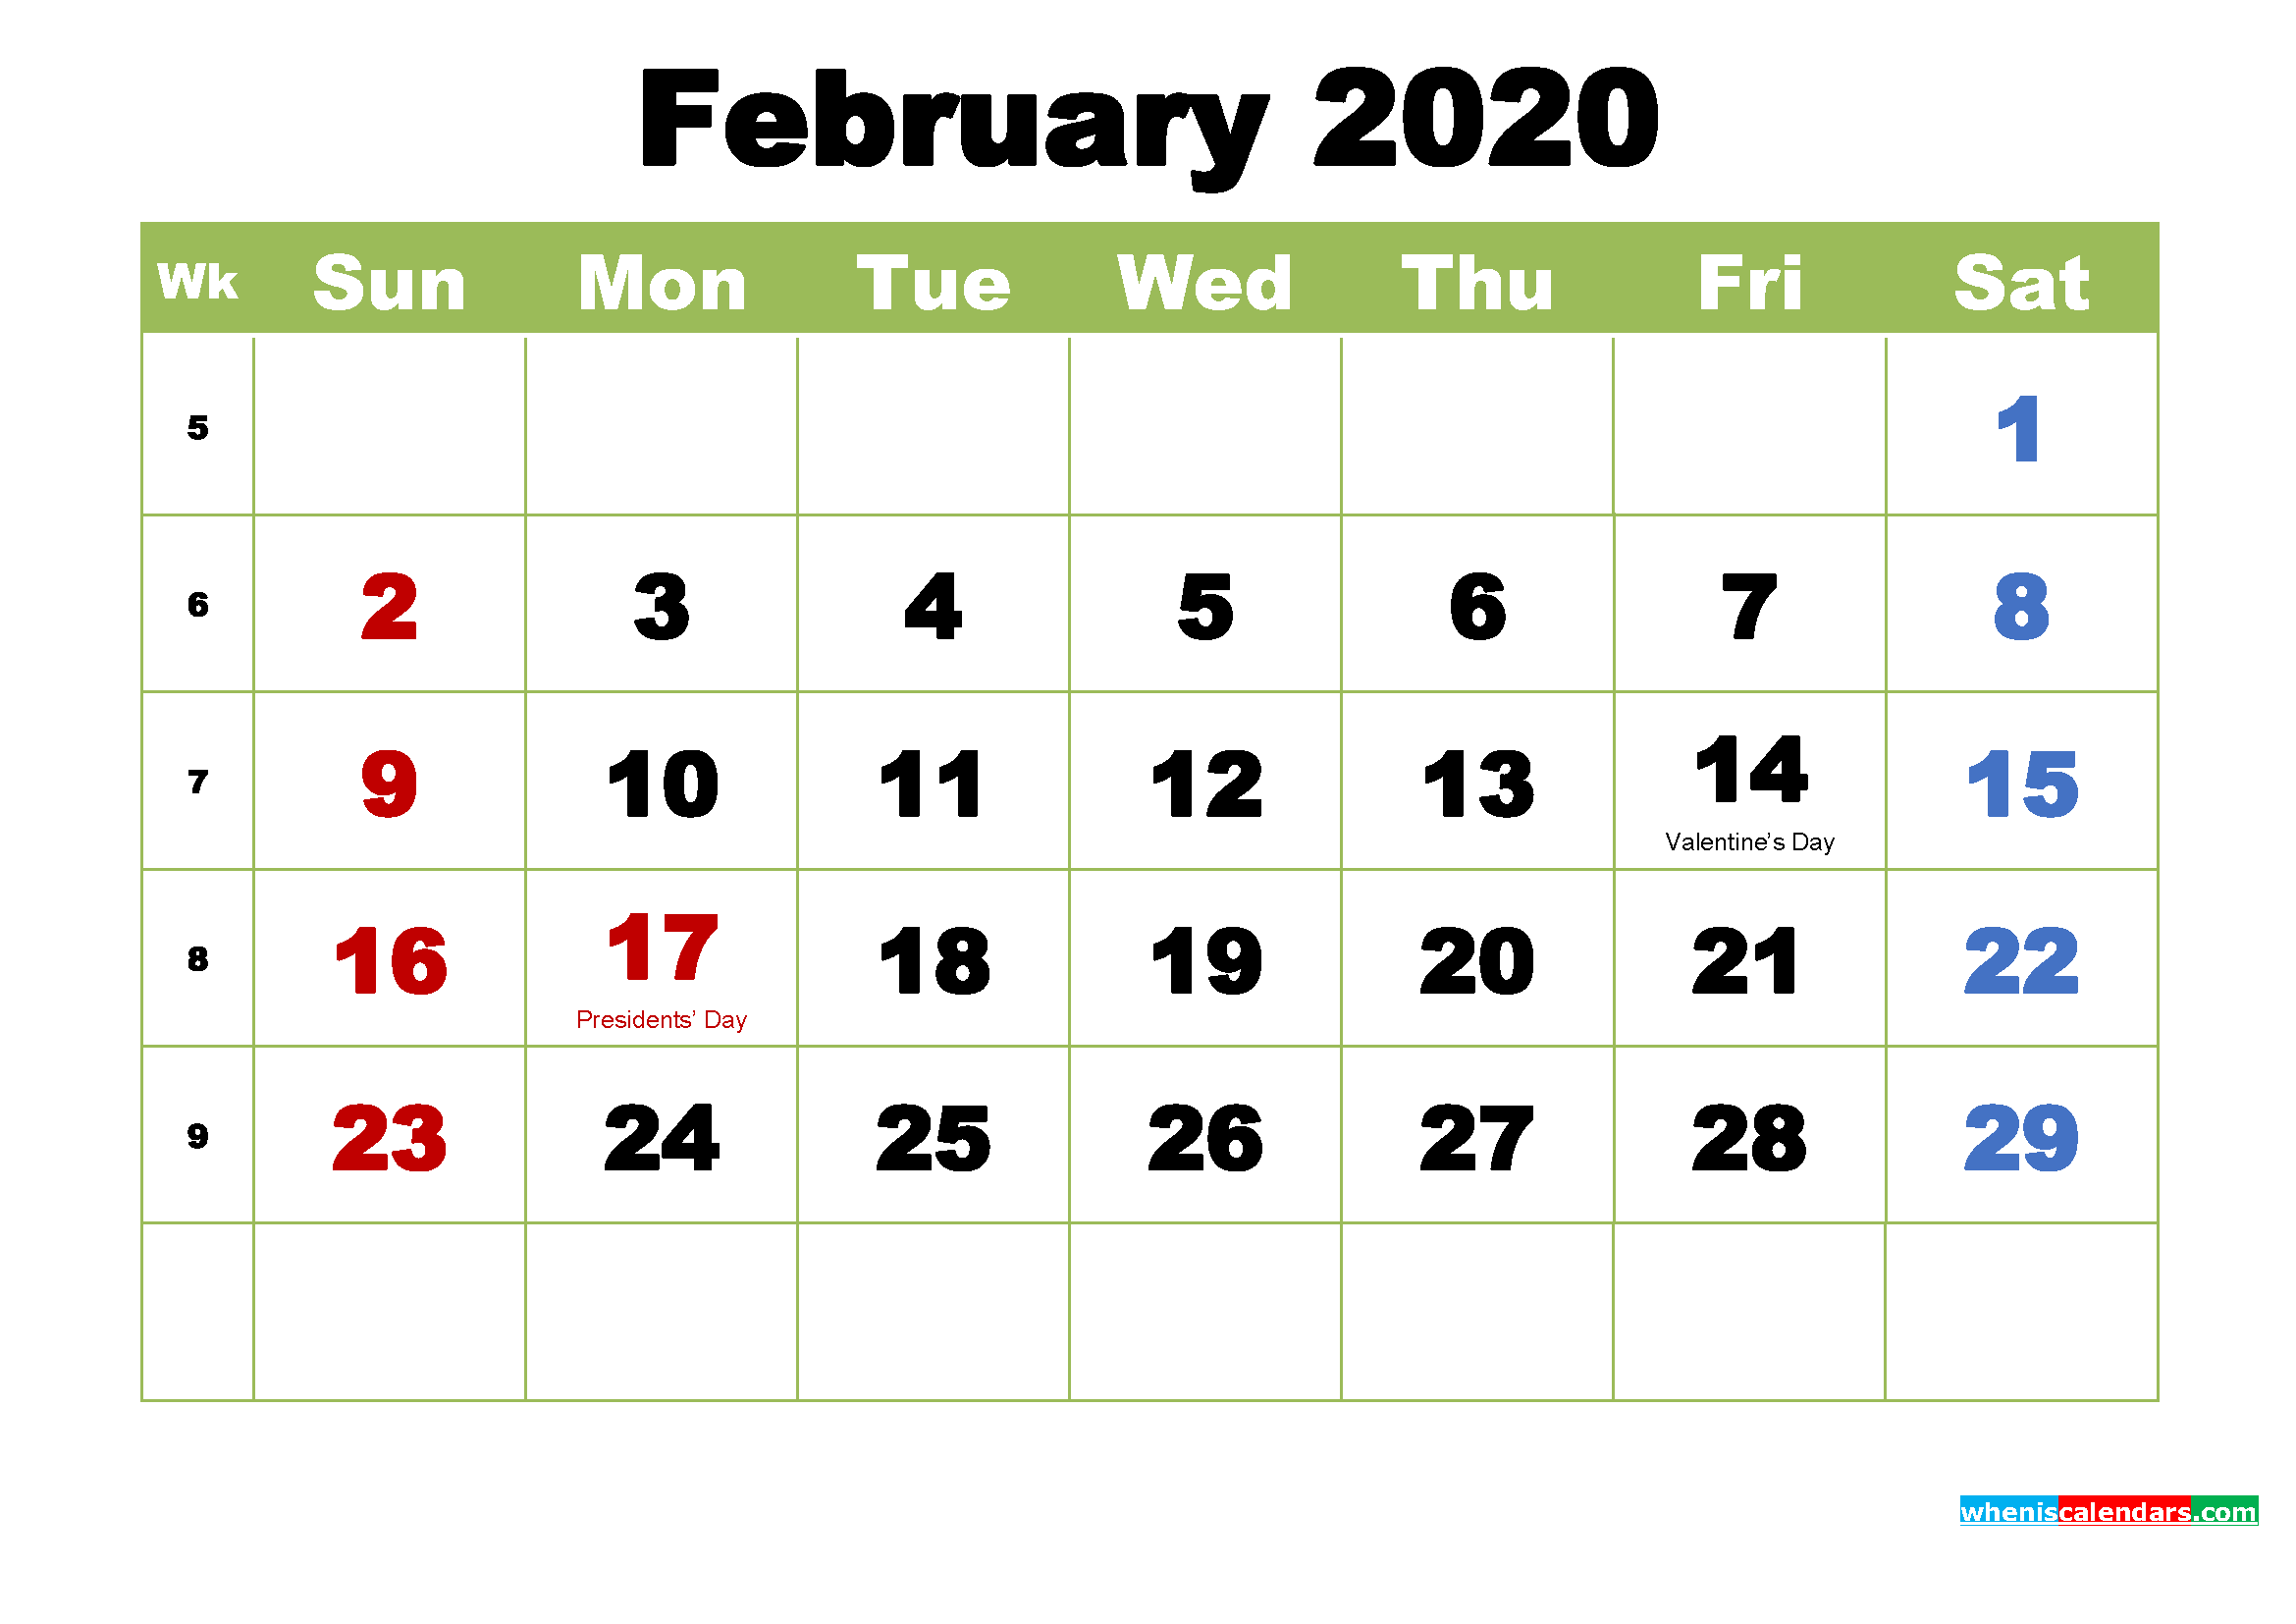 February 2020 Calendar with Holidays Wallpaper